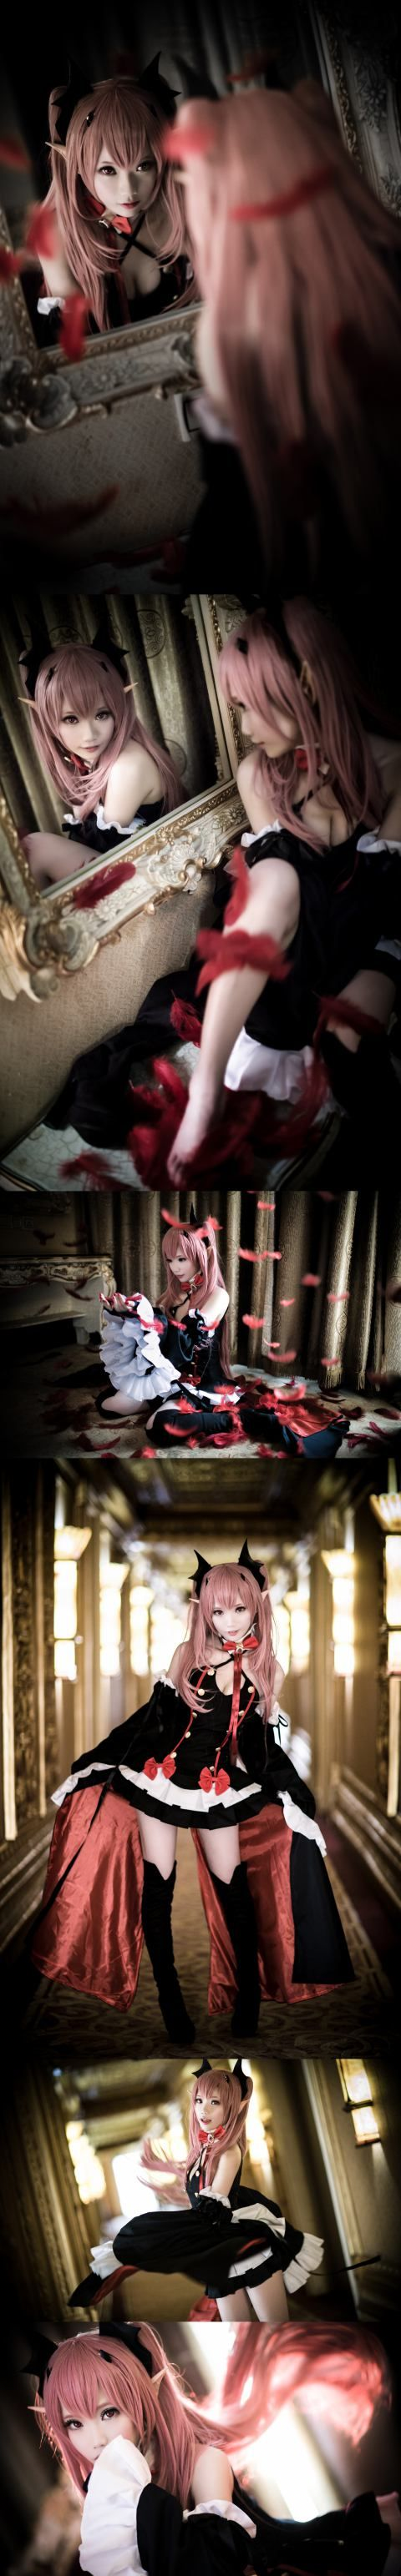 #Cosplay de Krul Tepes (クルル・ツェペシ) #OwarinoSeraph |Seraph of the End = El mundo d los vampiros